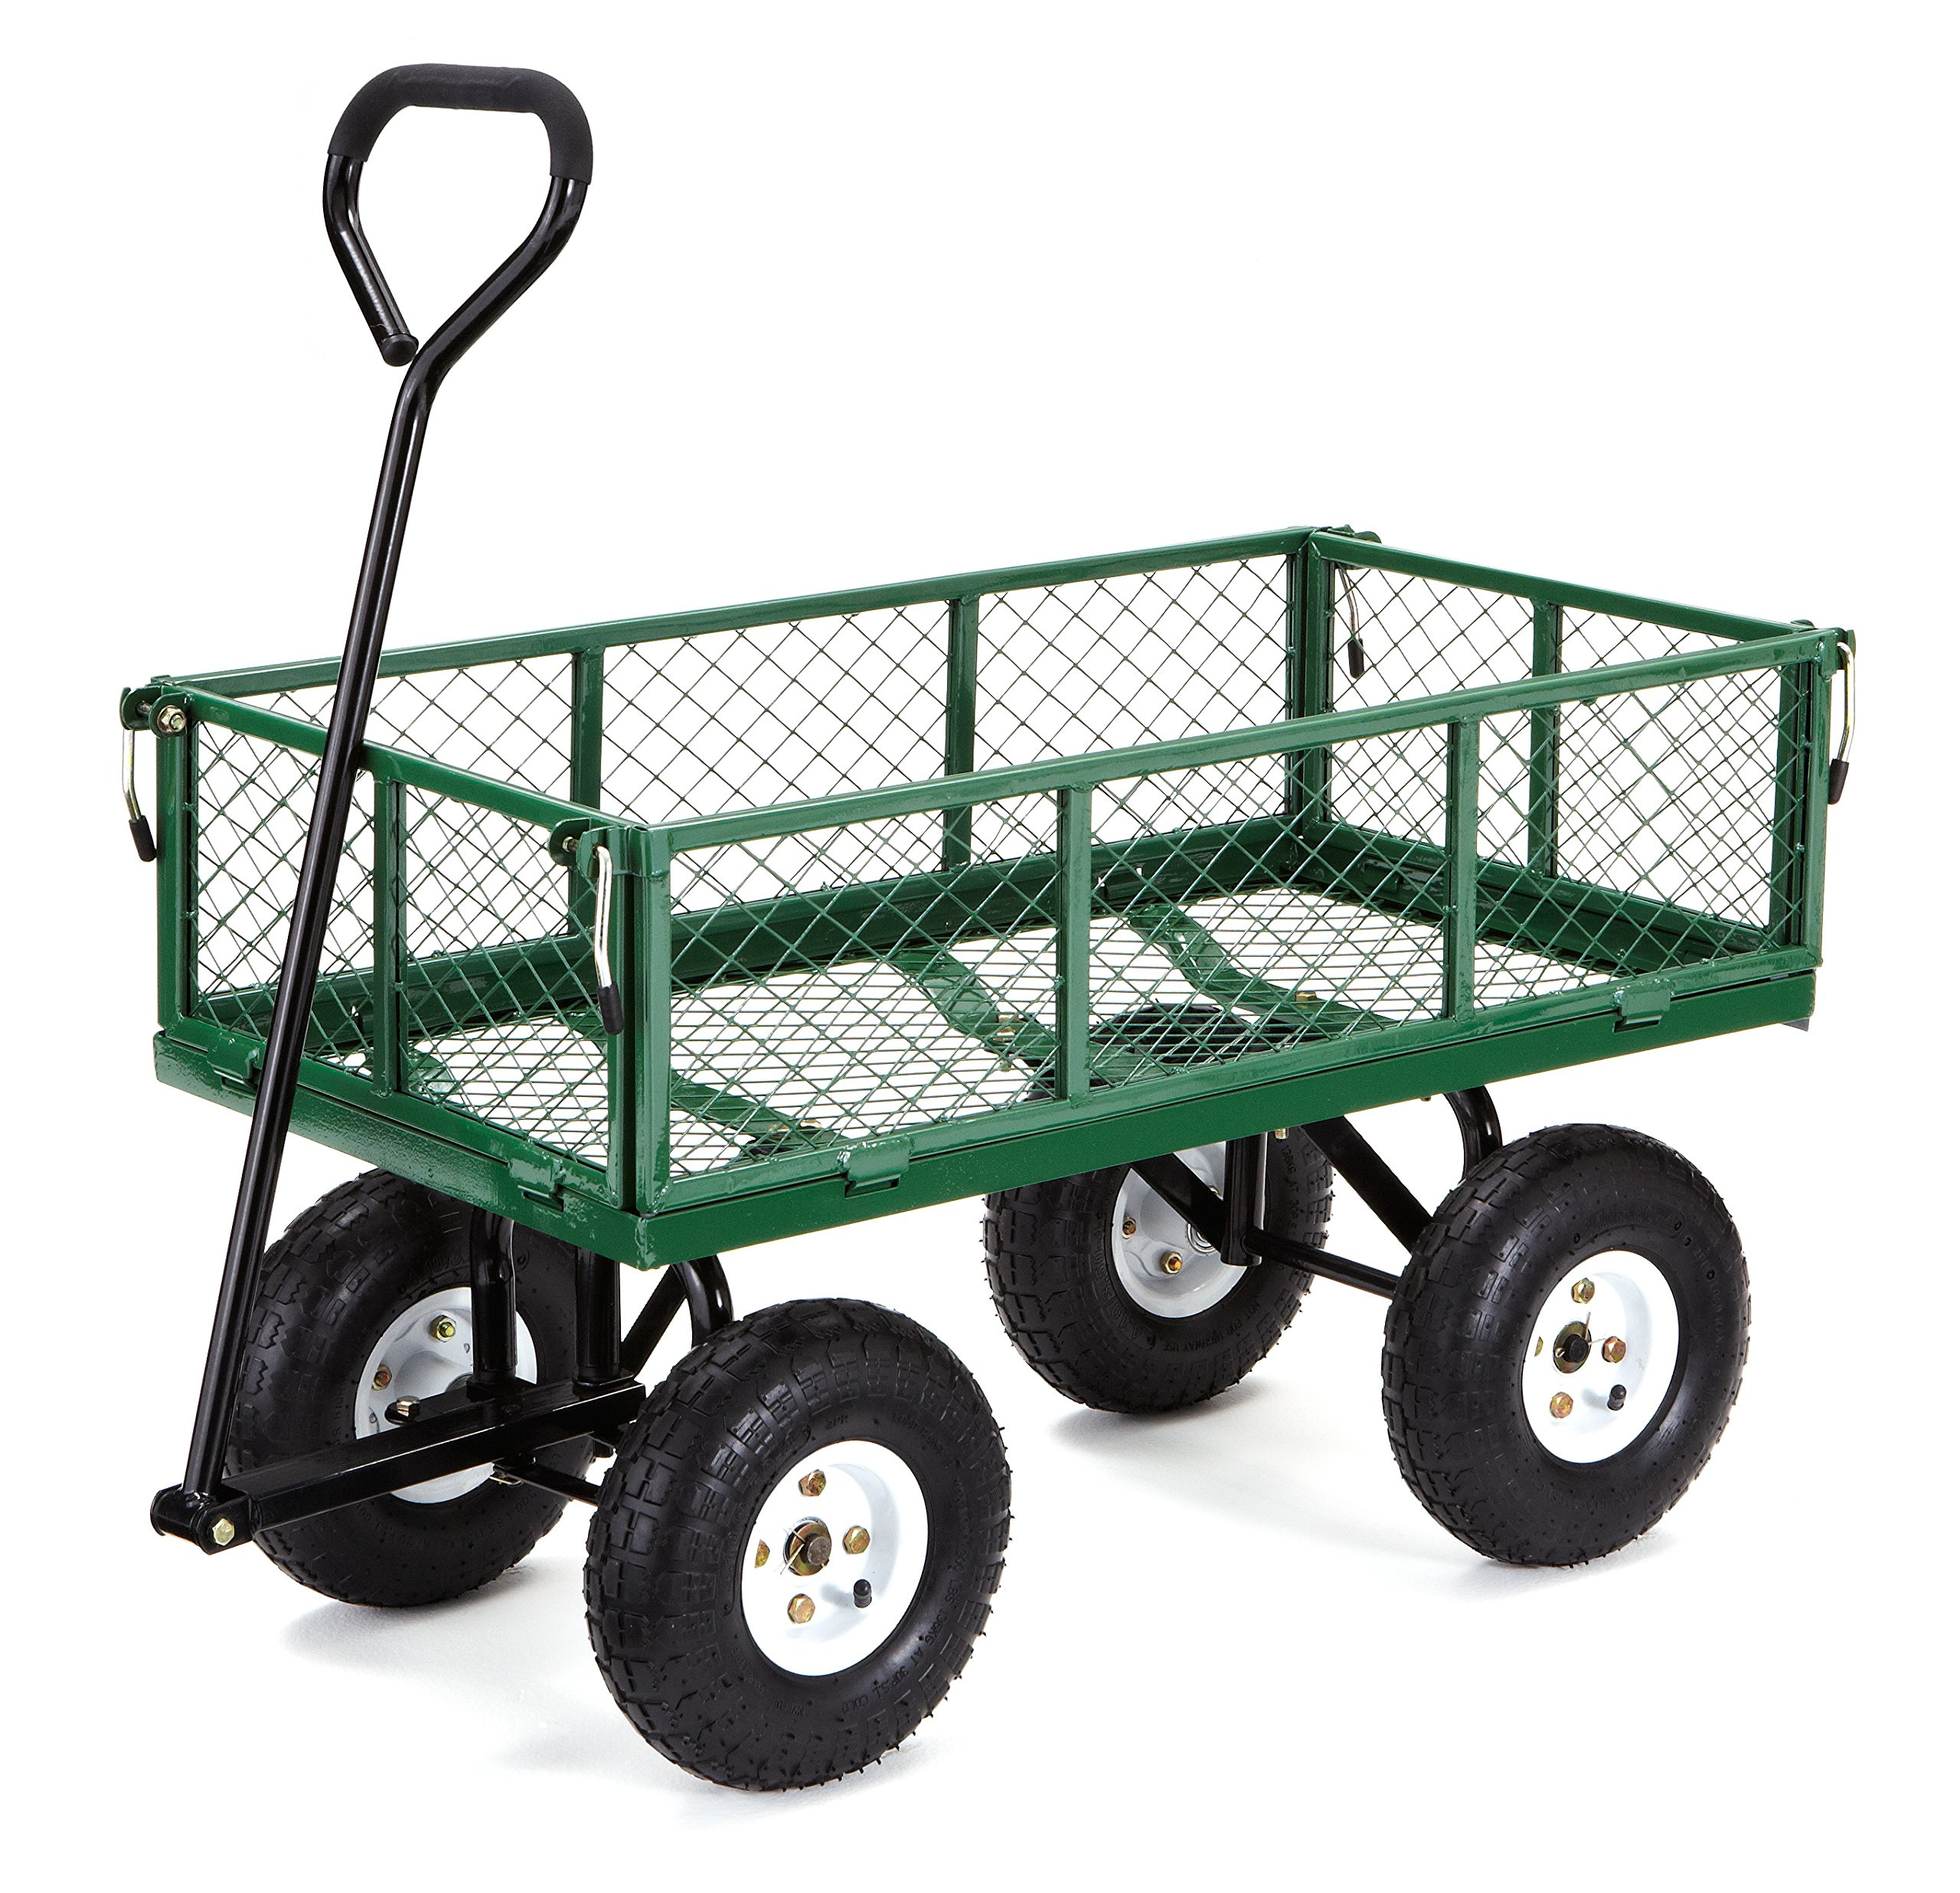 Gorilla Carts GOR400-COM Steel Garden Cart with Removable Sides, 400-lbs. Capacity, Green by Gorilla Carts